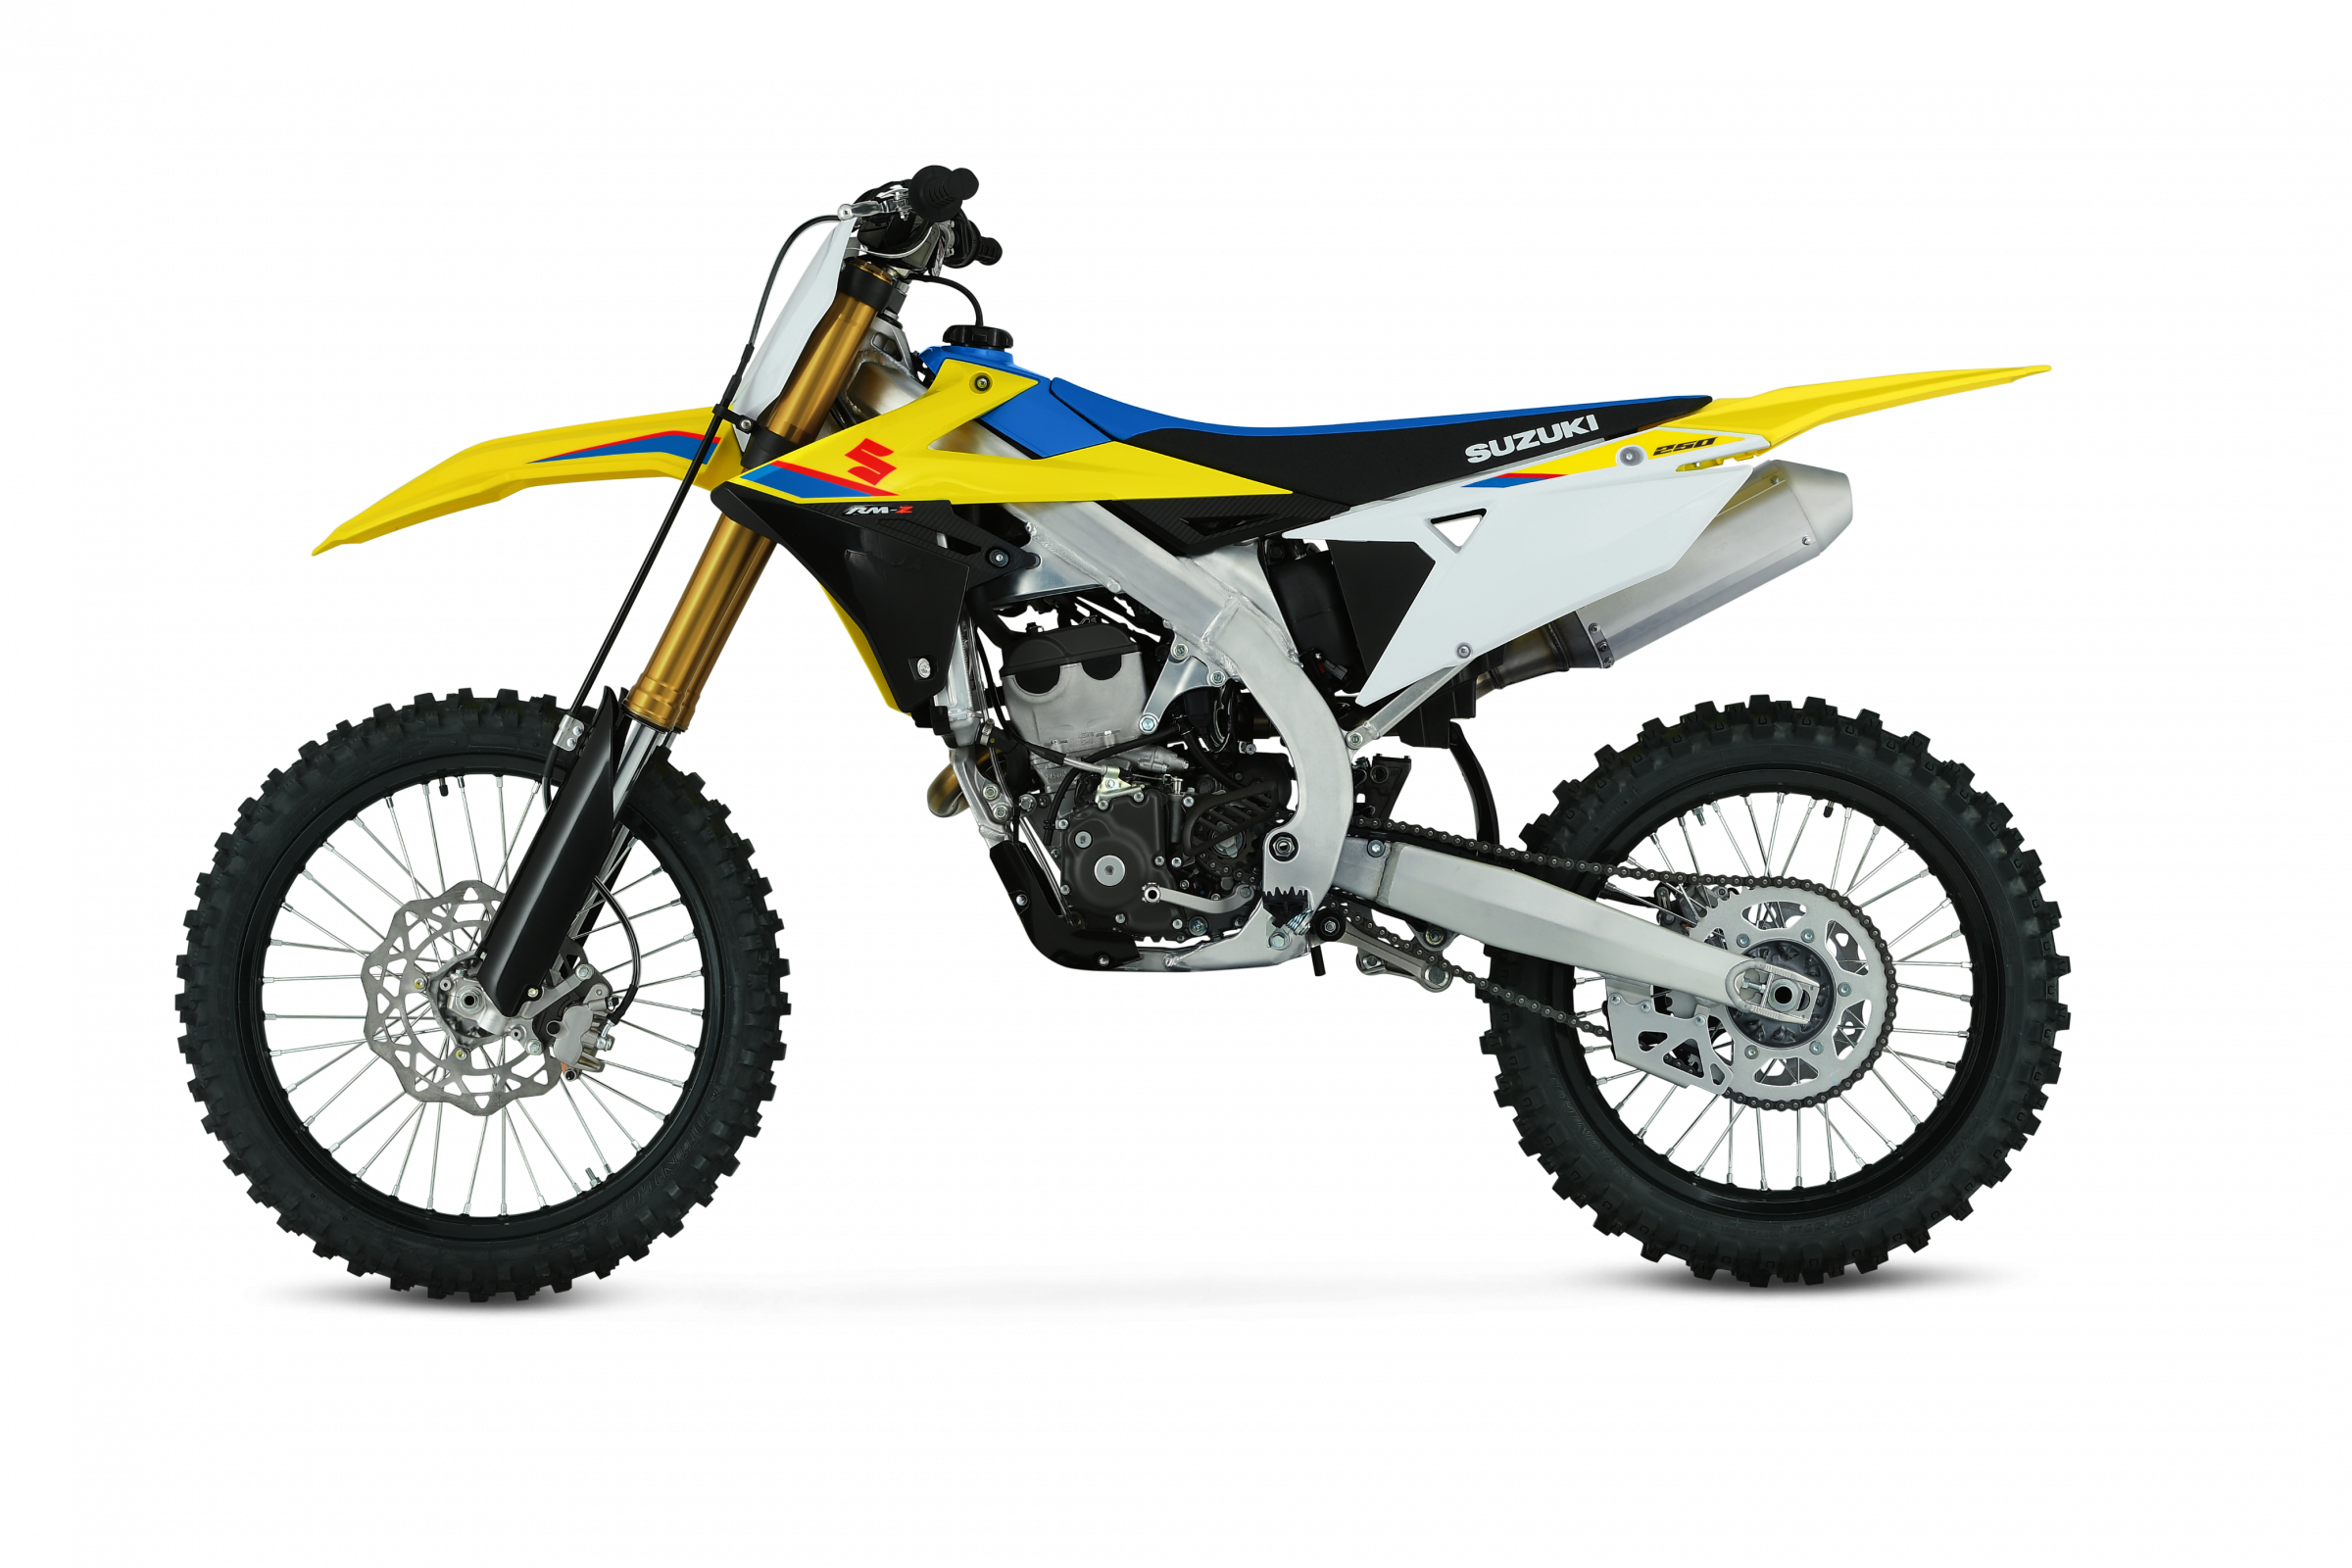 The redesigned 2019 RM-Z250 from Suzuki.